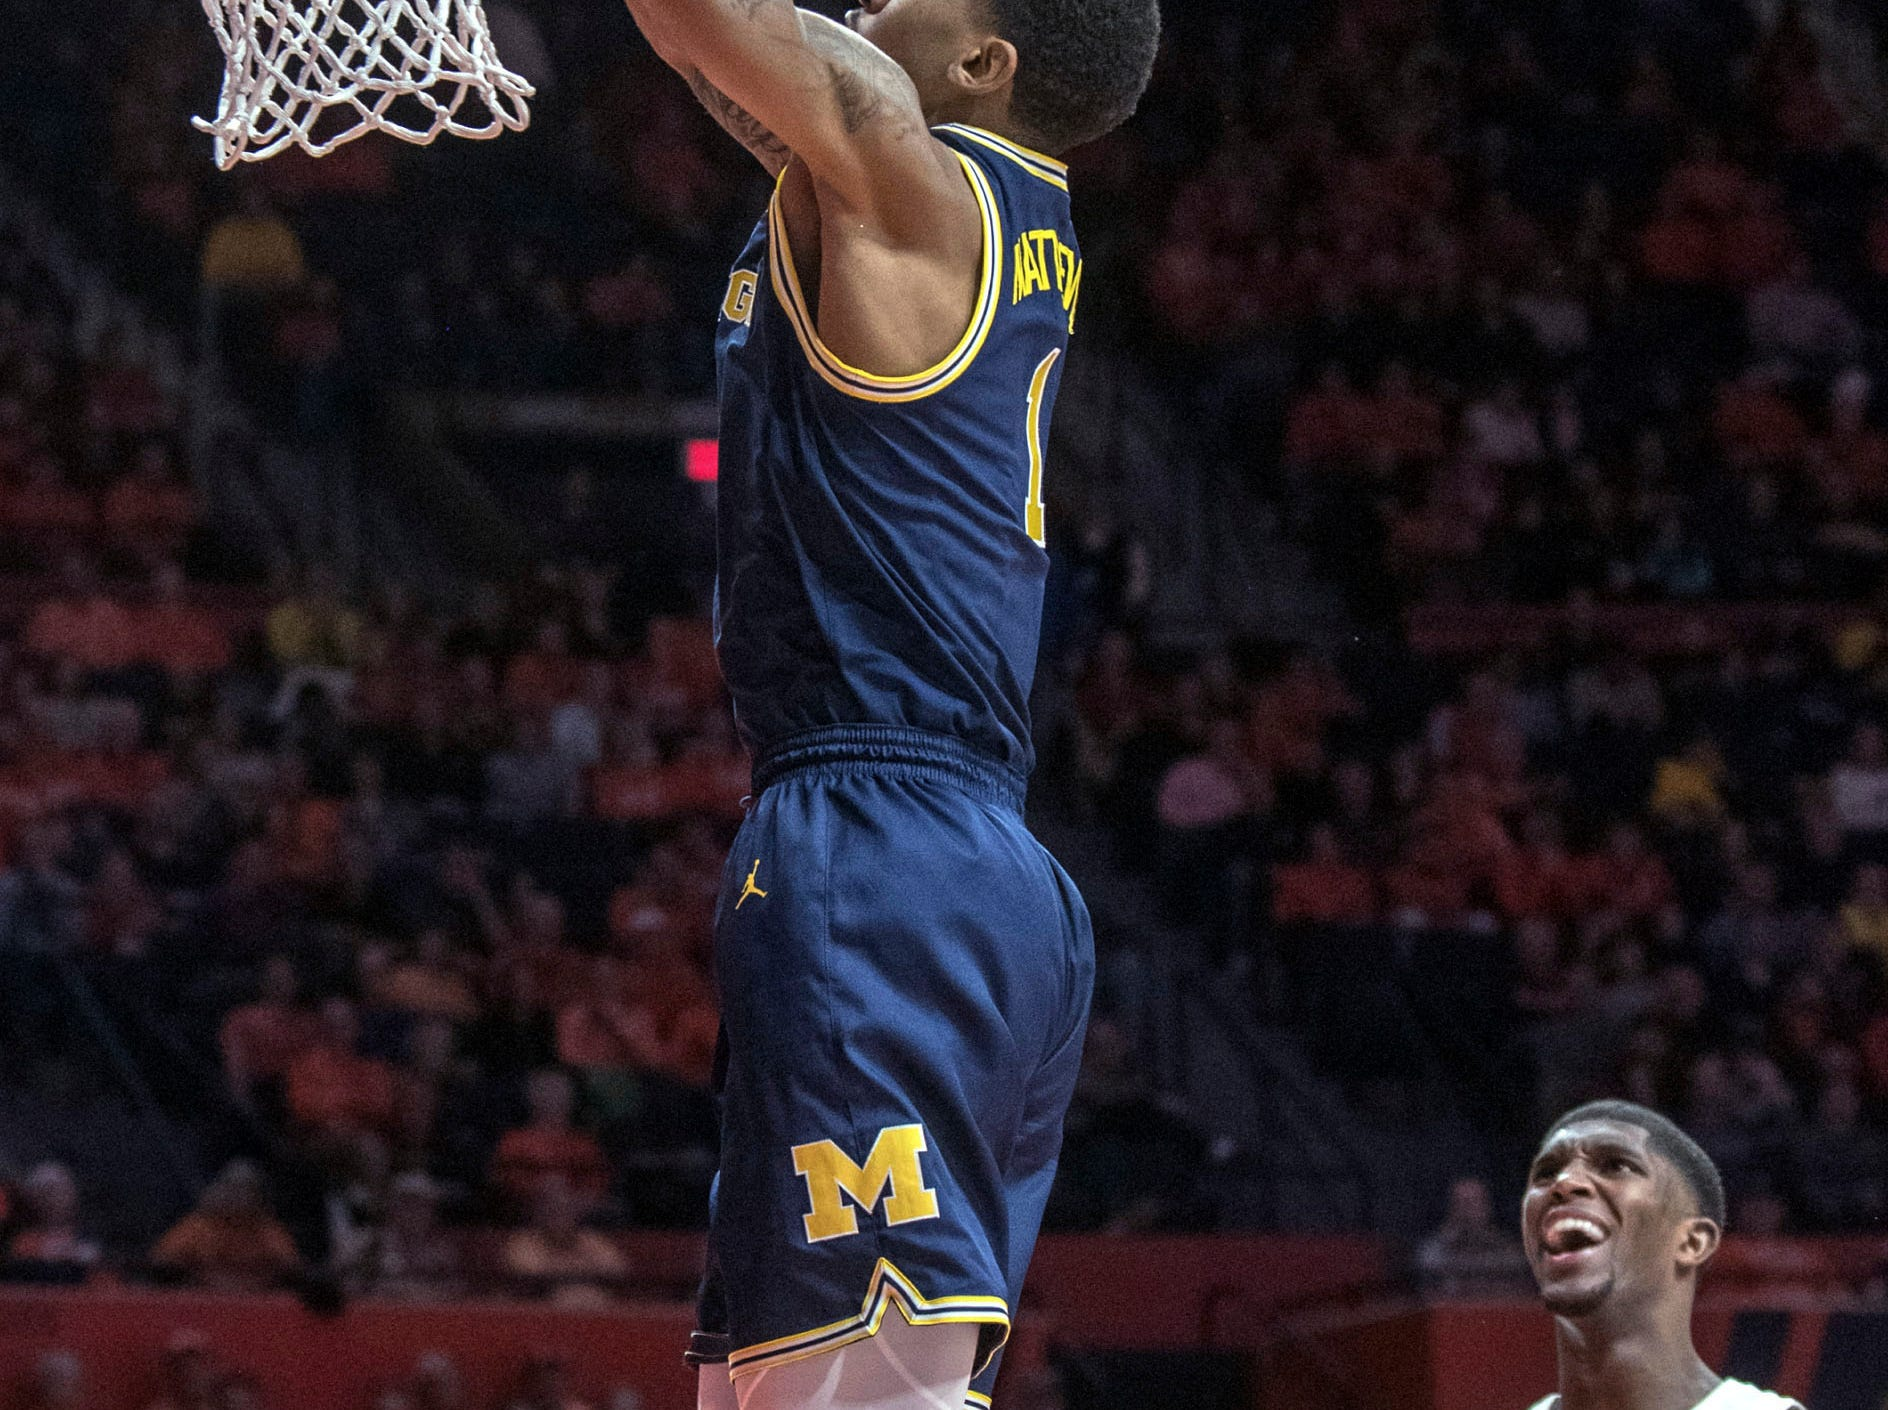 Illinois guard Trent Frazier (1) and Illinois Kipper Nichols (2) watch as Michigan guard Charles Matthews (1) dunks during the second half.